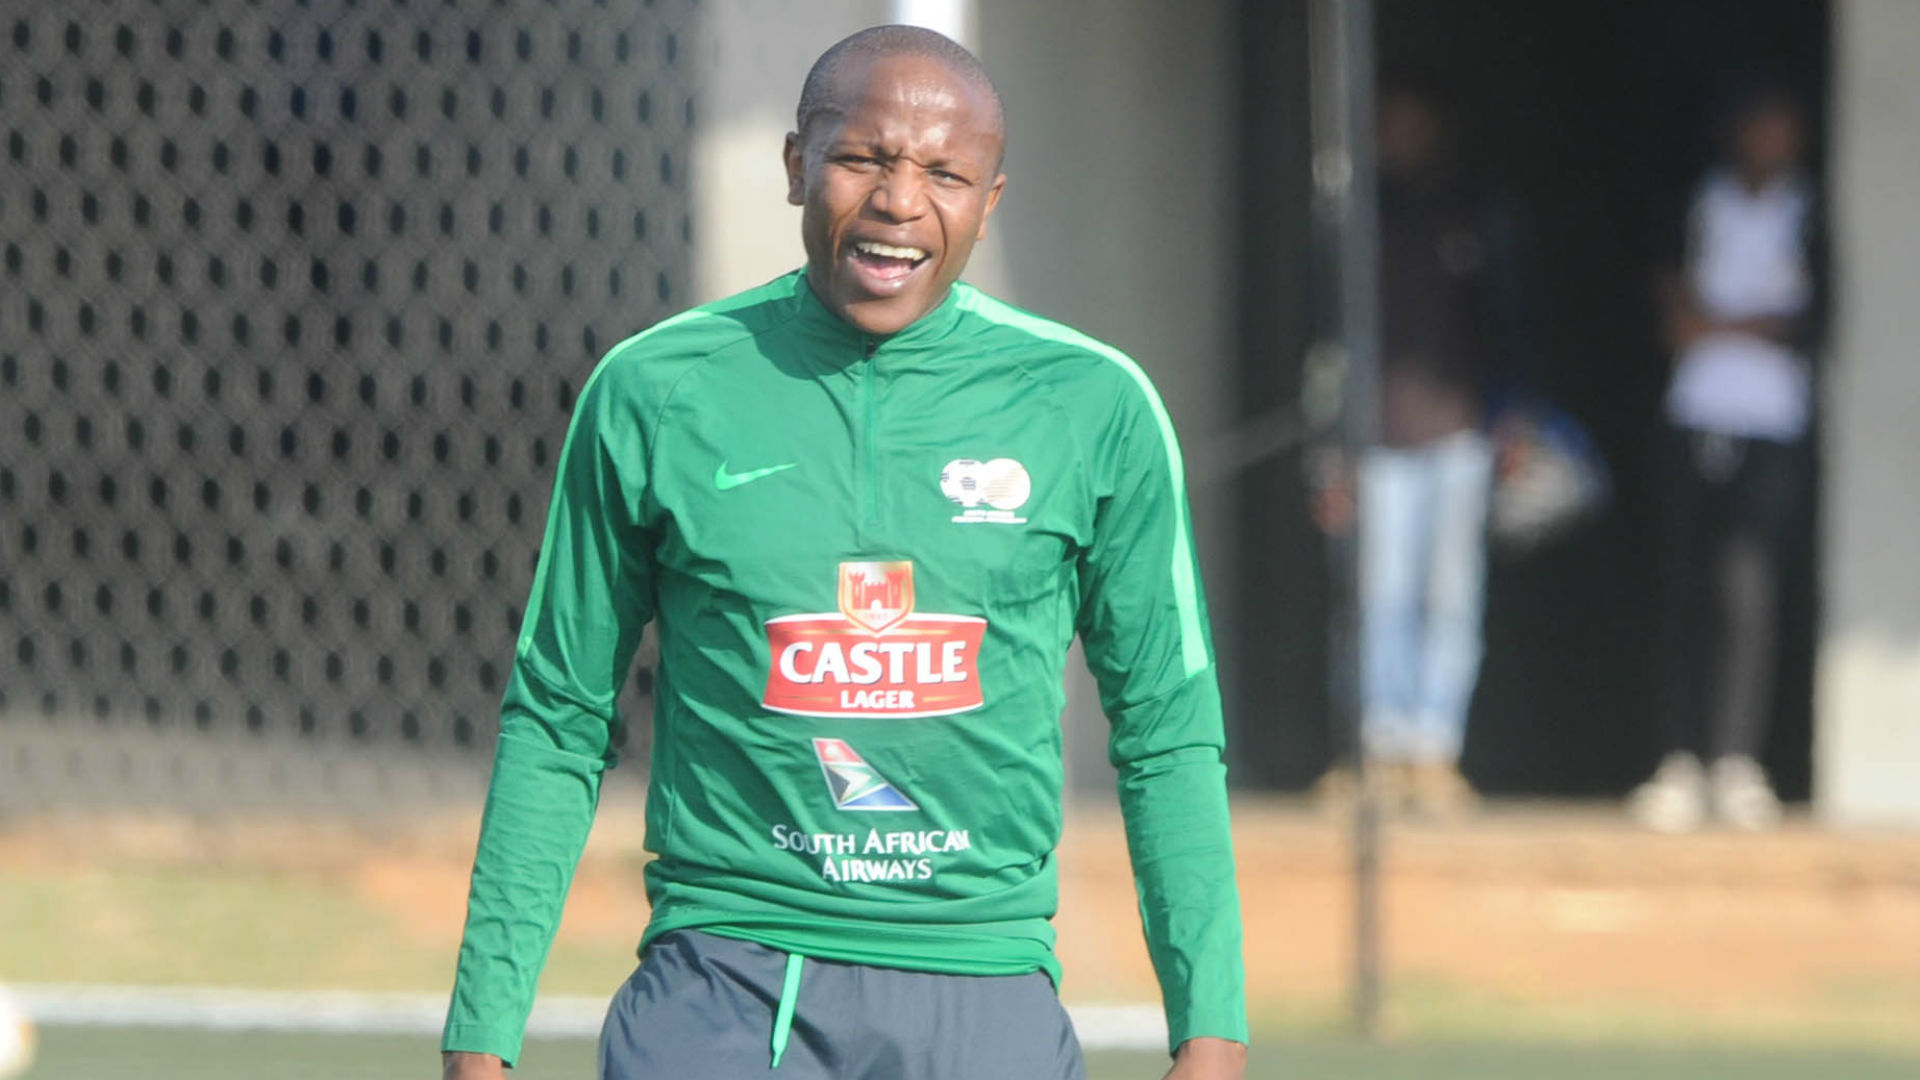 2021 Afcon Qualifiers: I want to bring my Kaizer Chiefs form to Bafana Bafana - Manyama